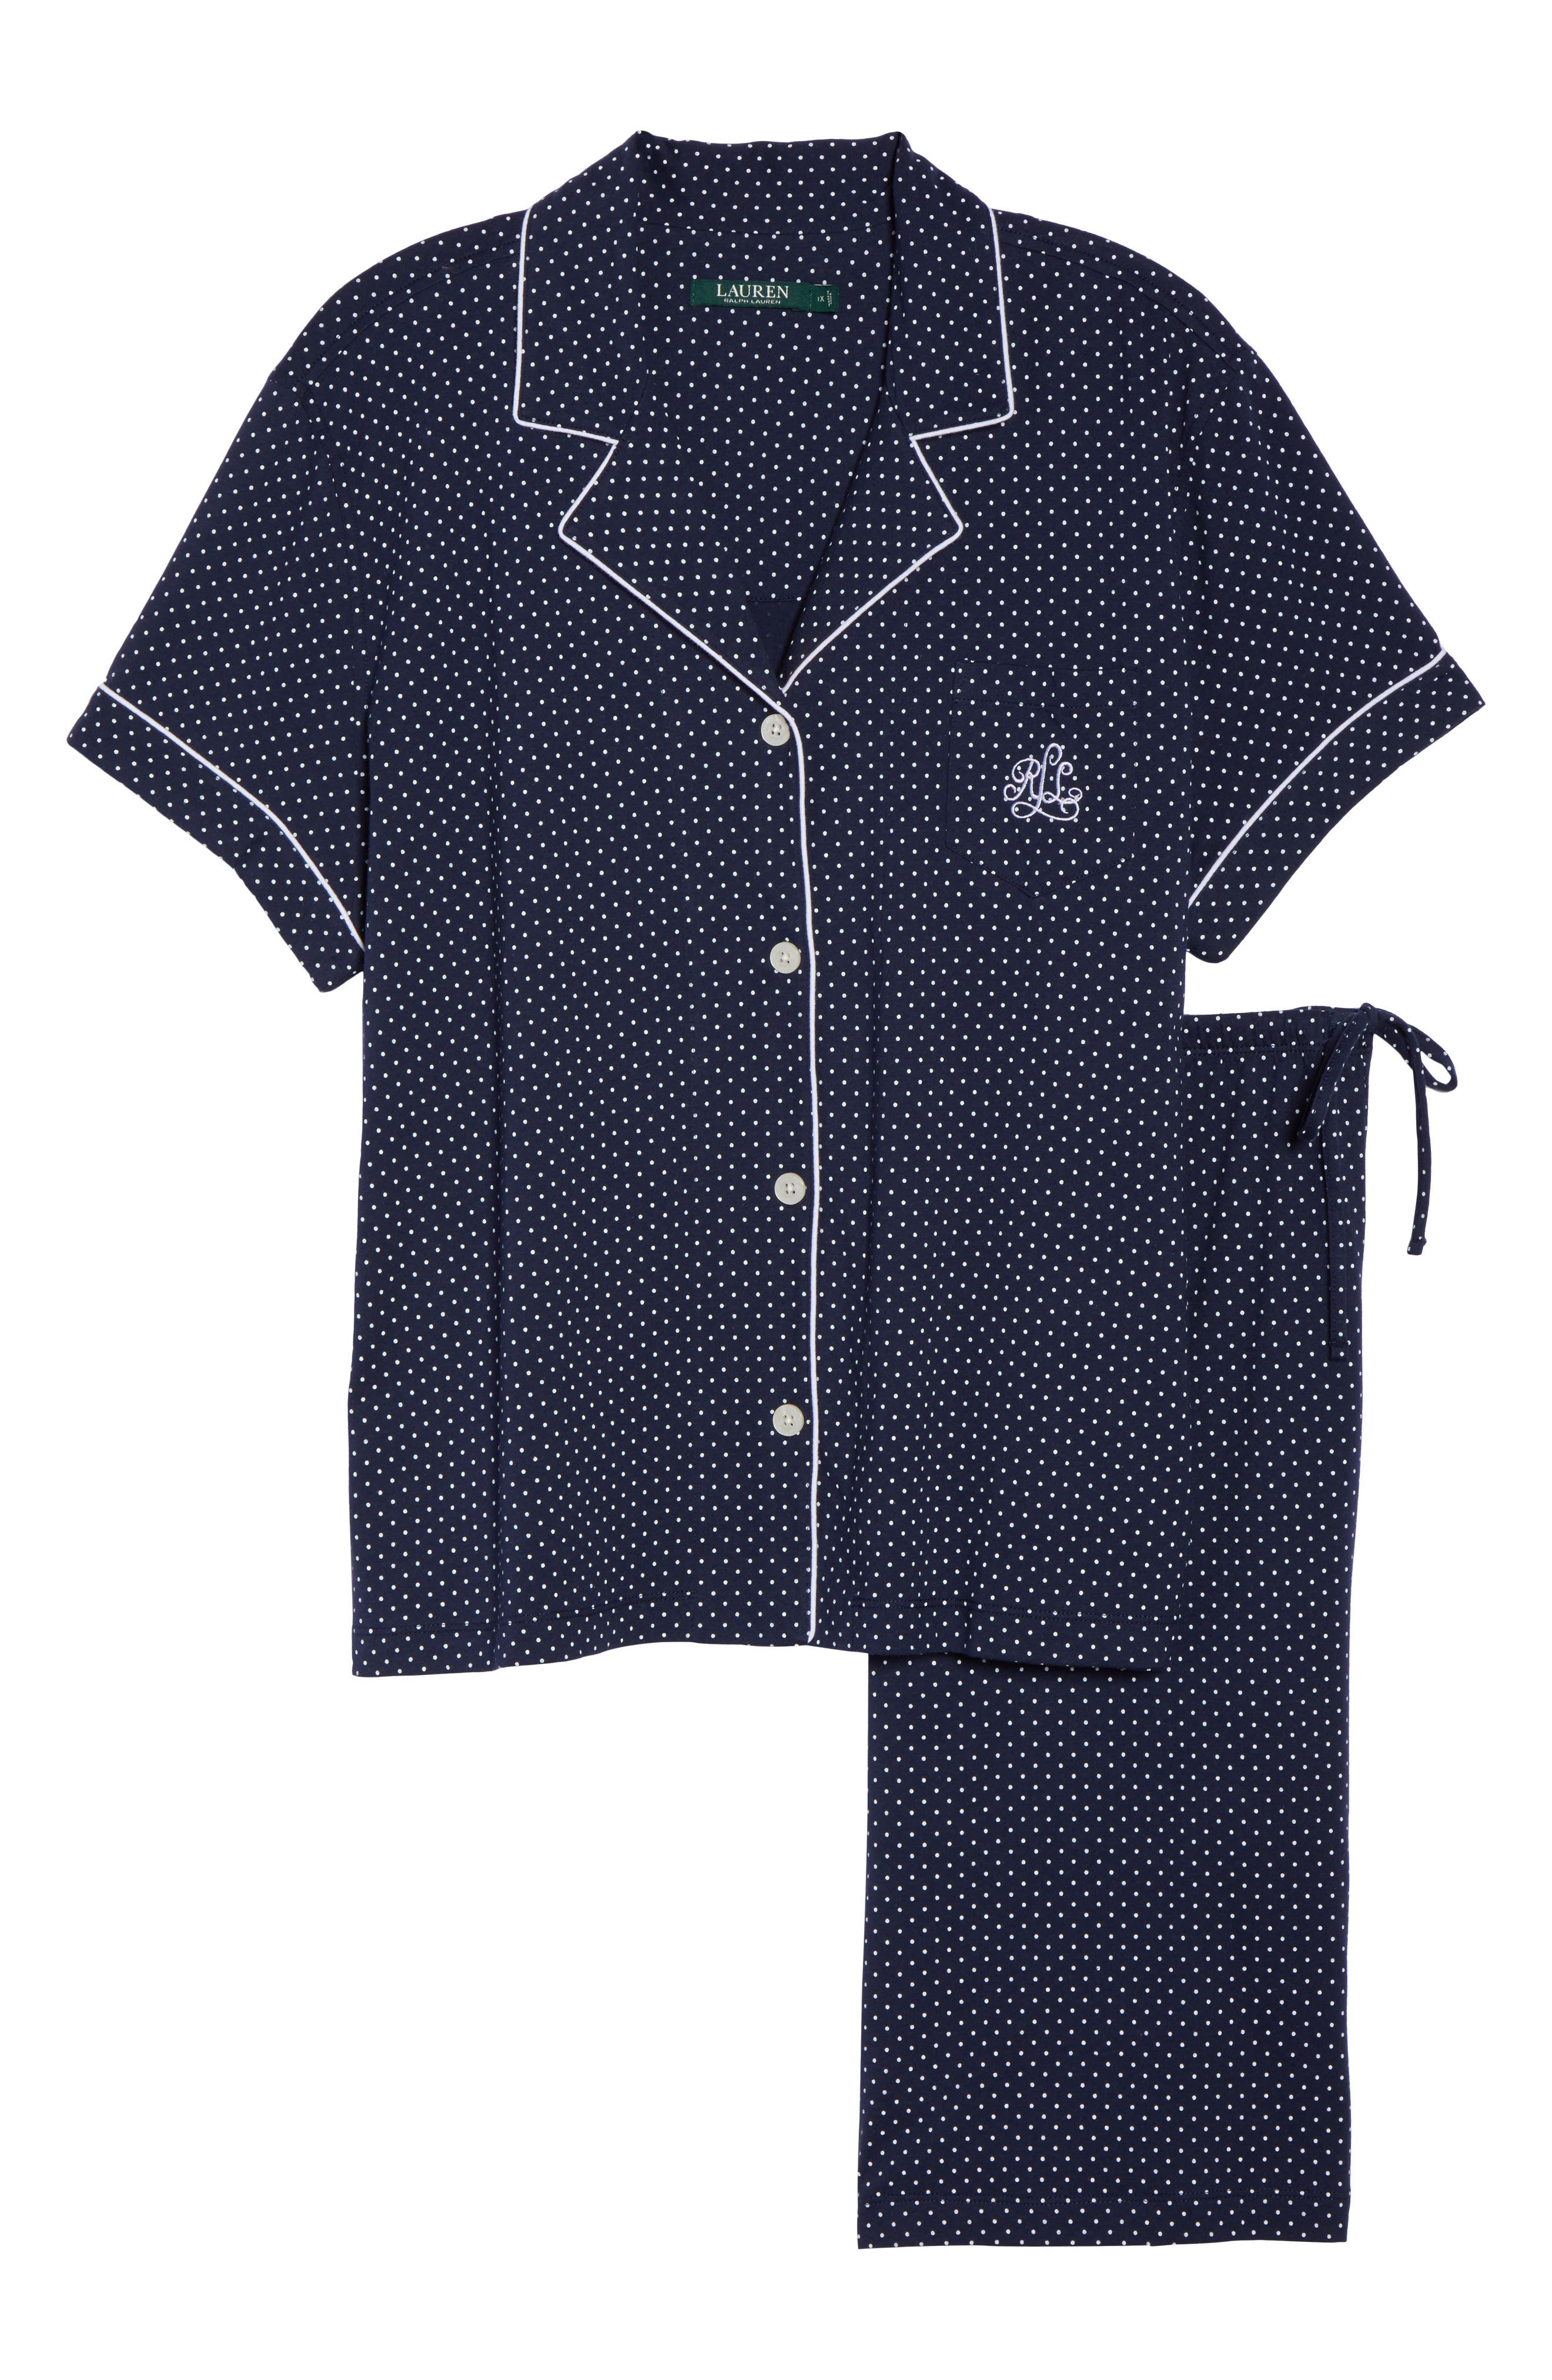 LAUREN RALPH LAUREN,                             Bermuda Pajamas,                             Alternate thumbnail 6, color,                             NAVY DOT